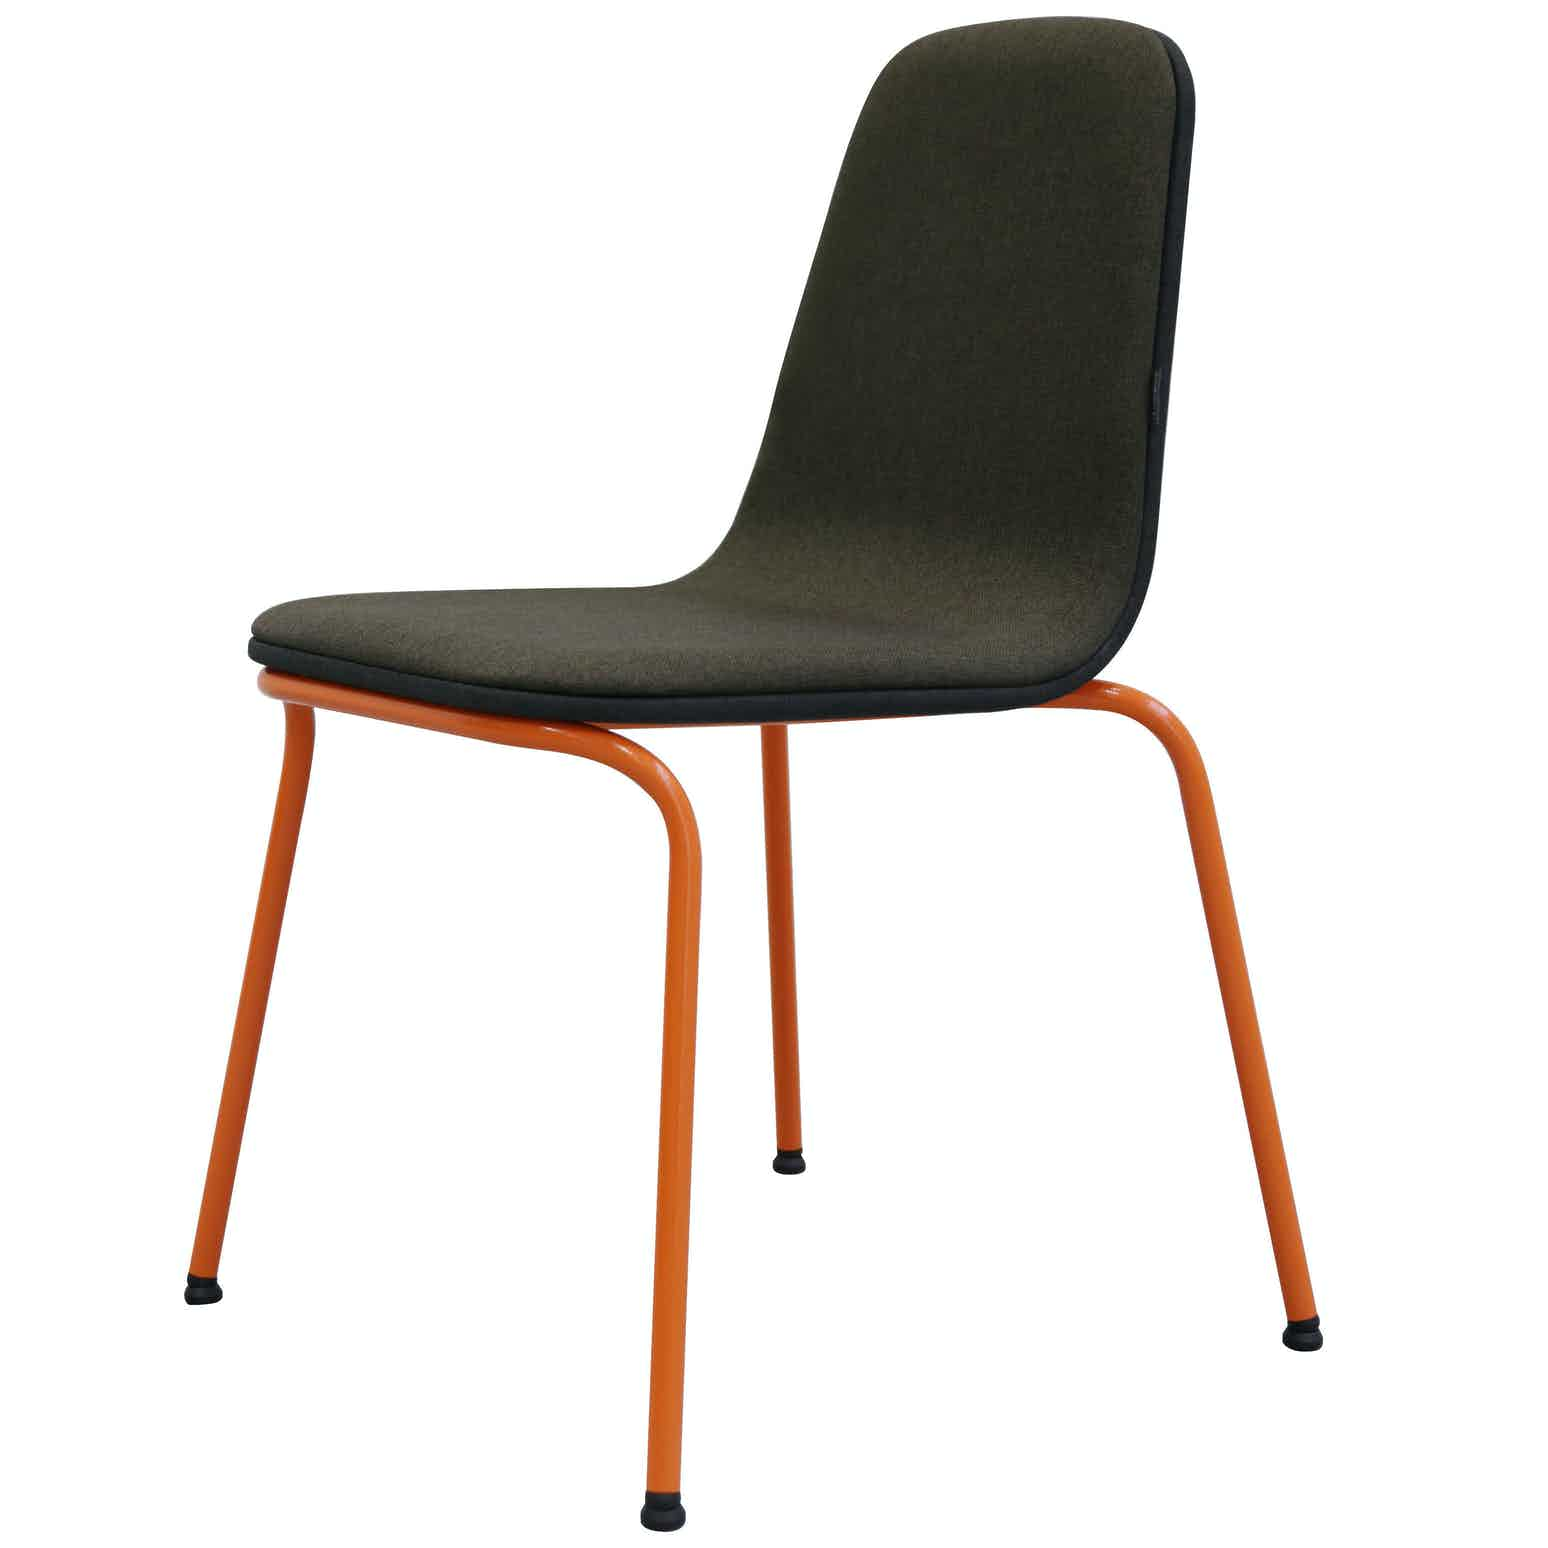 Bogaerts Label Grey Orange Siren Chair Haute Living 190218 184250